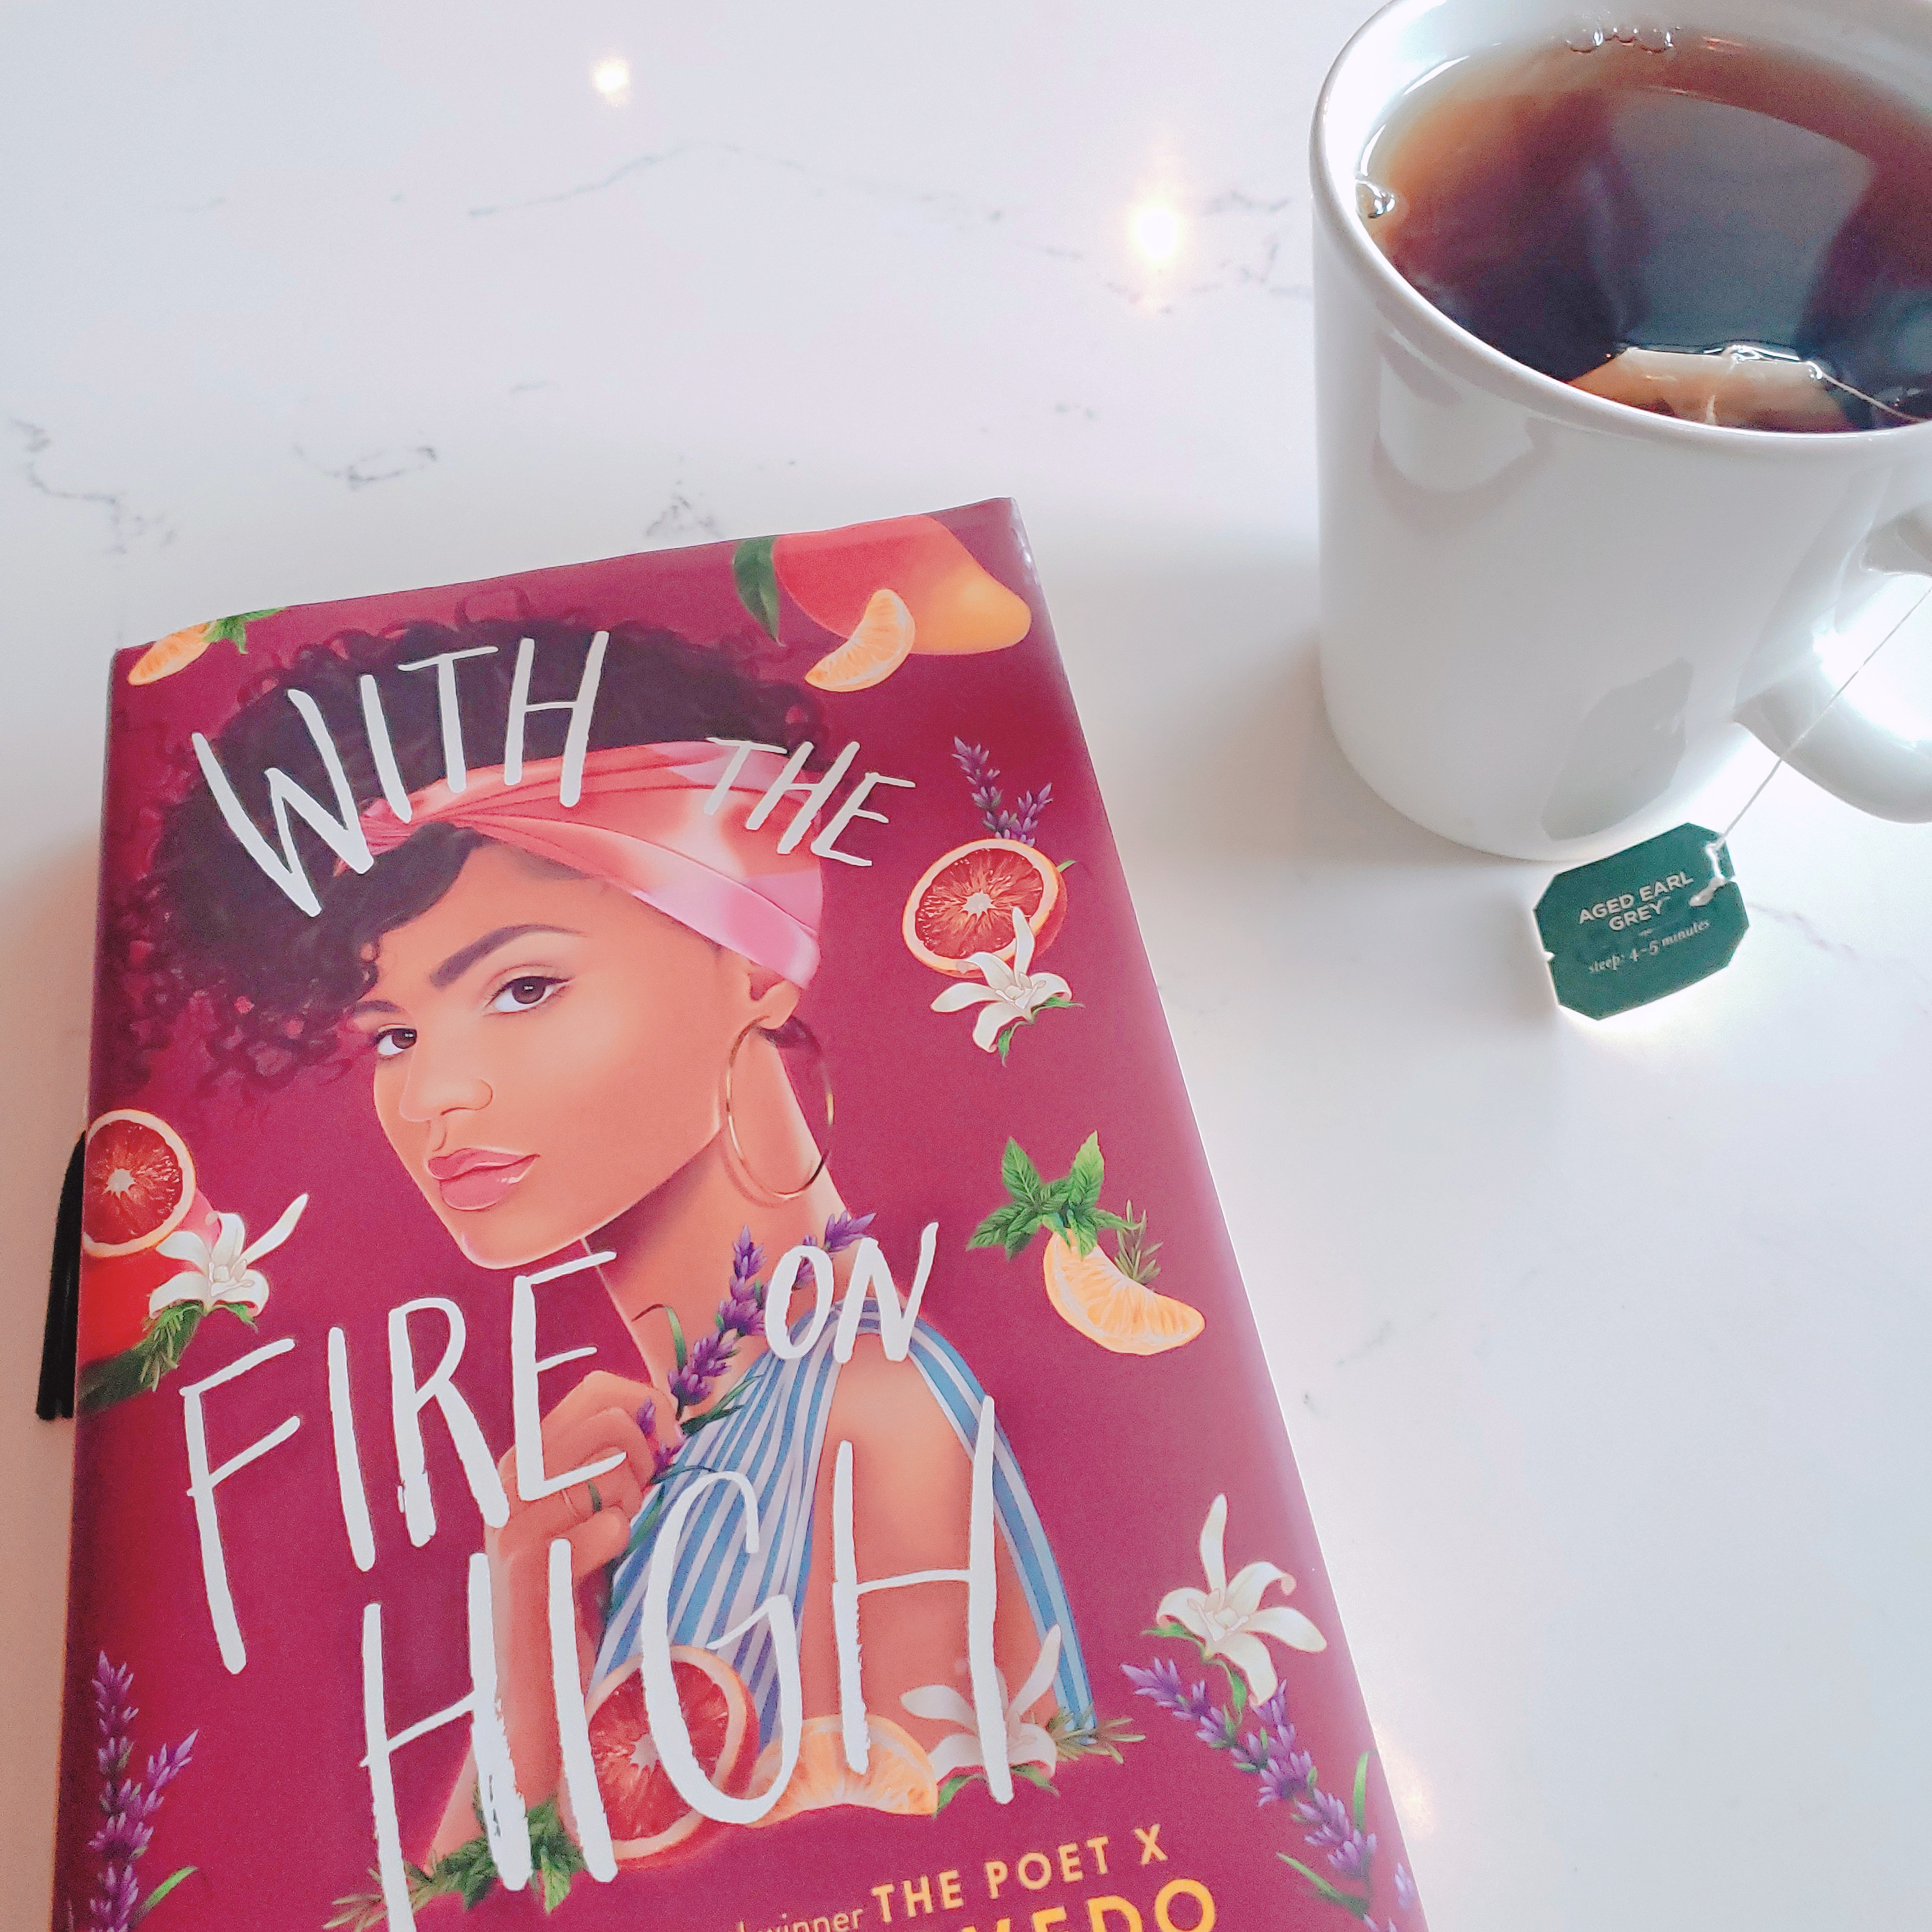 With the Fire on High Book Review